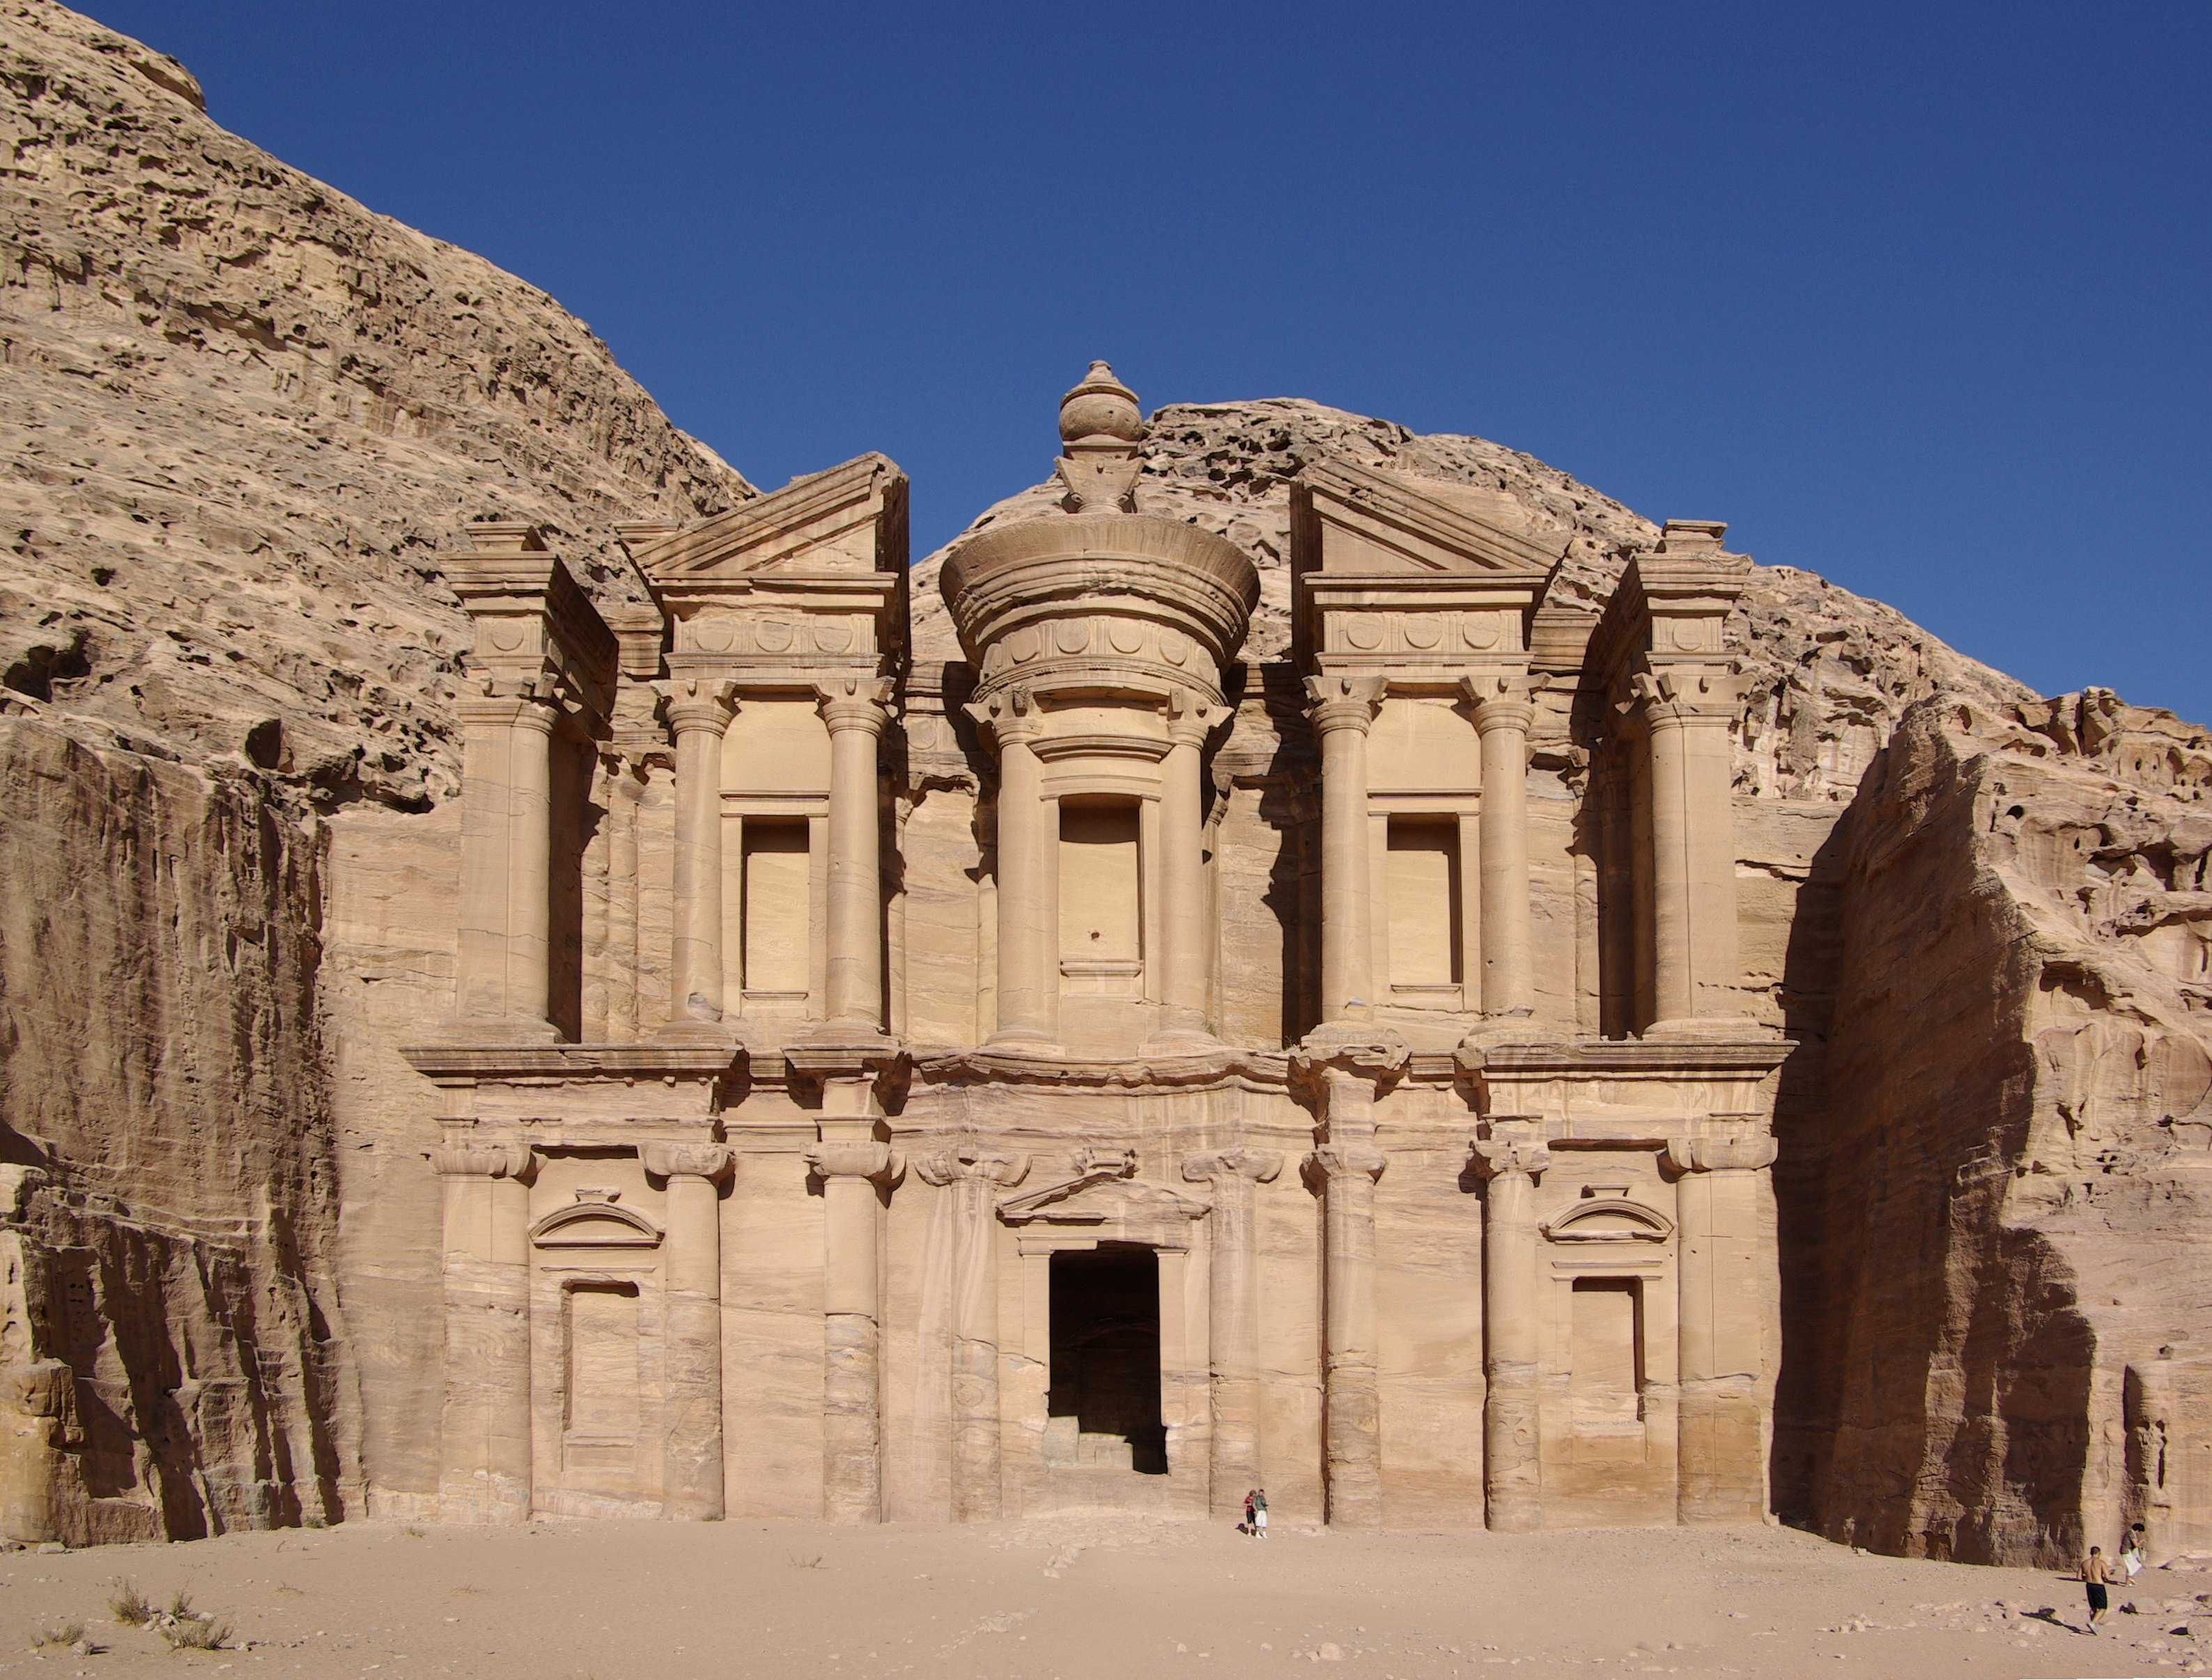 information on petra jordan Geography the middle east kingdom of jordan is bordered on the west by israel and the dead sea, on the north by syria, on the east by iraq, and on the south by saudi arabia.